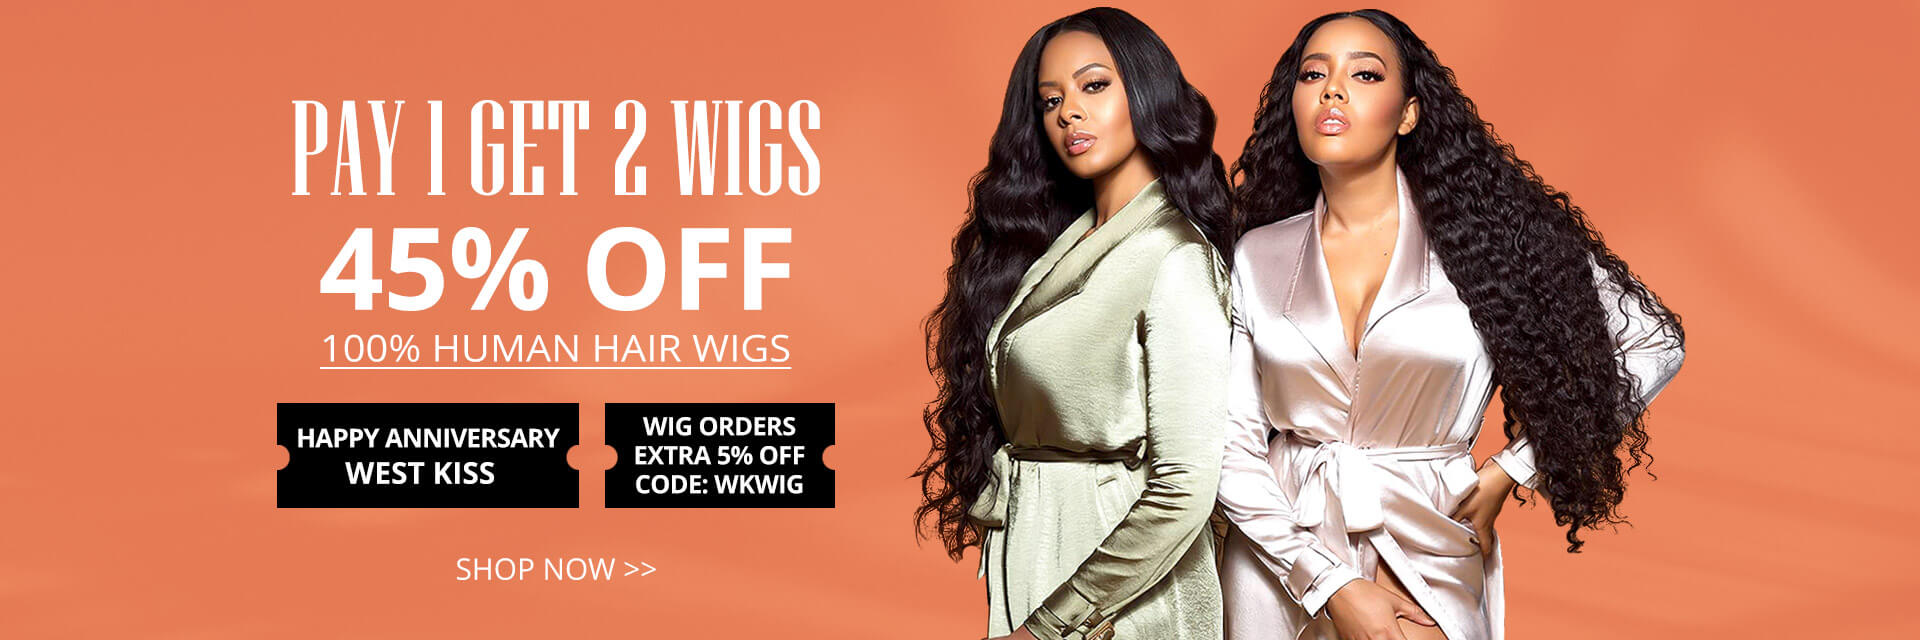 Stand out yourself with your new human hair lace wigs